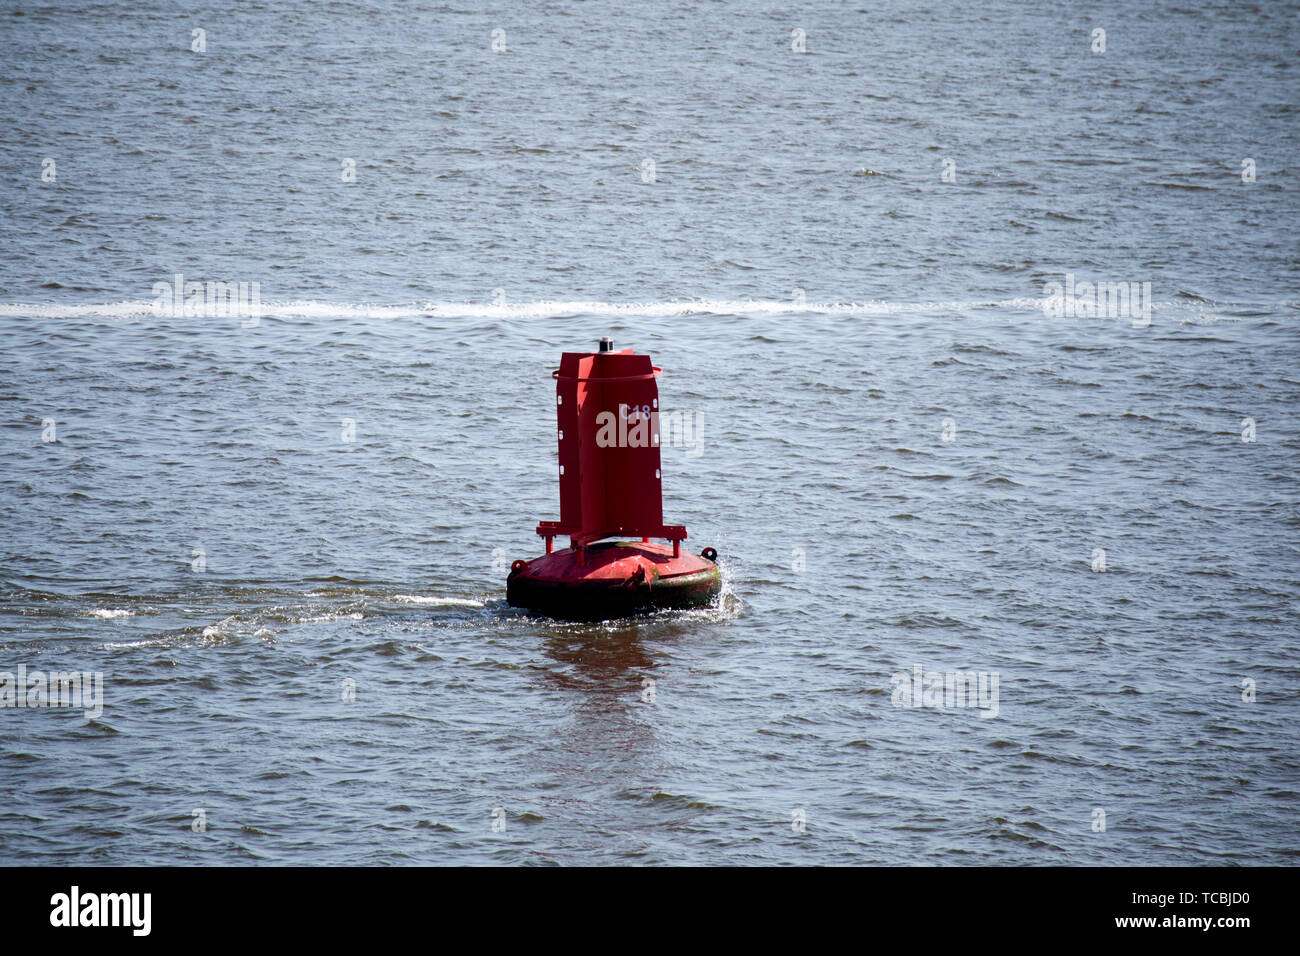 red port channel marker c18 liverpool bay uk - Stock Image